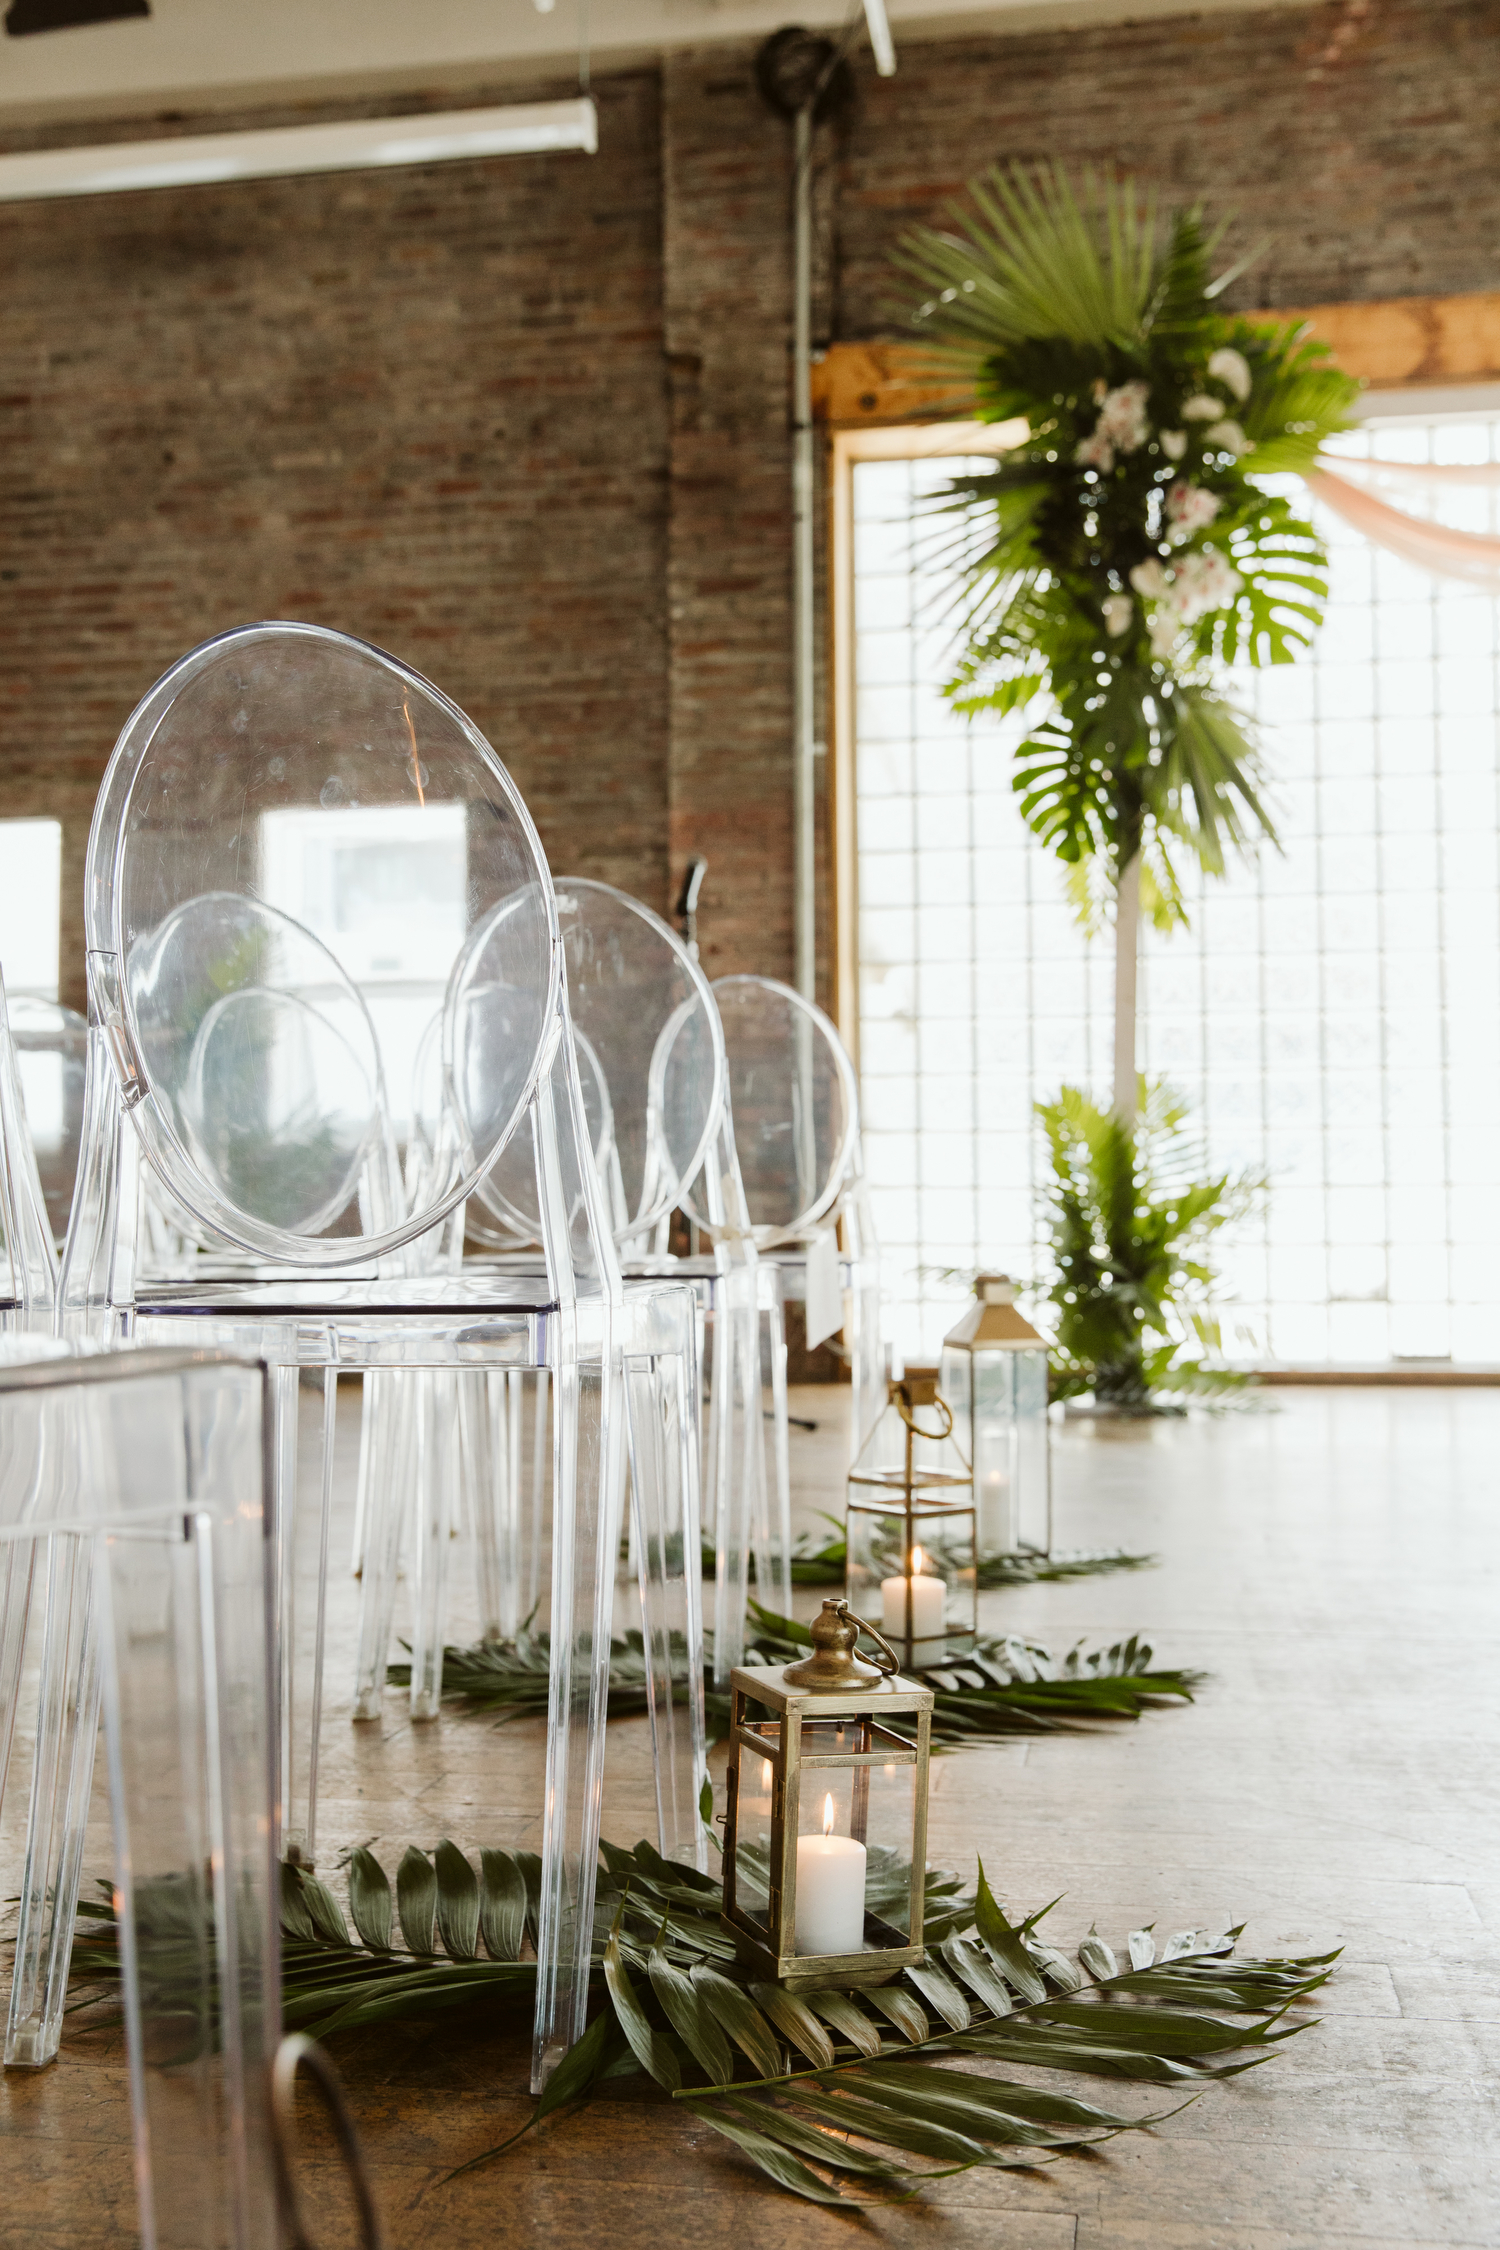 99 Sudbury tropical wedding by Magnolia Studios Toronto